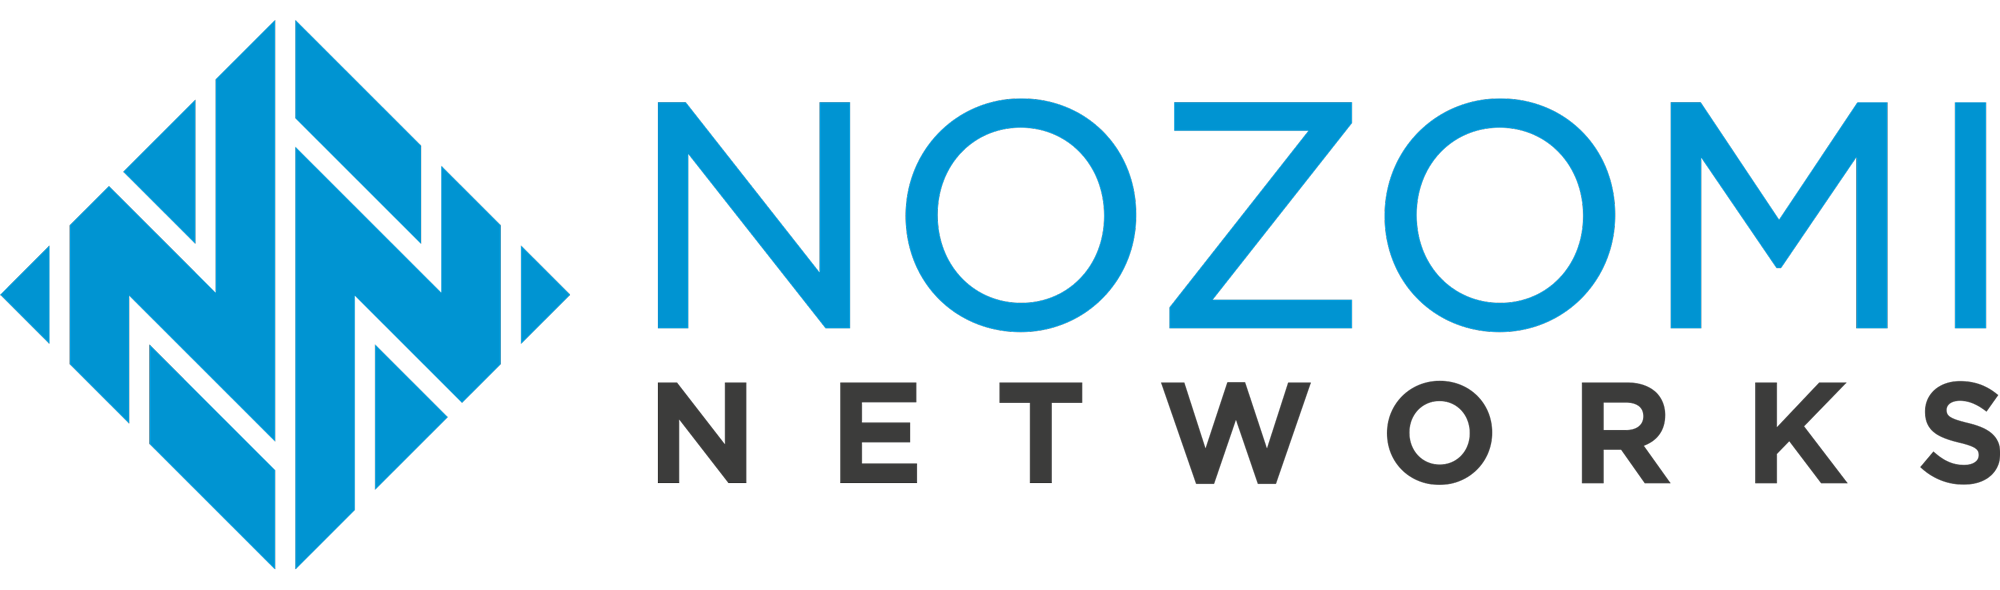 Nozomi Networks announces $15 Million investment to expand in ICS cybersecurity market